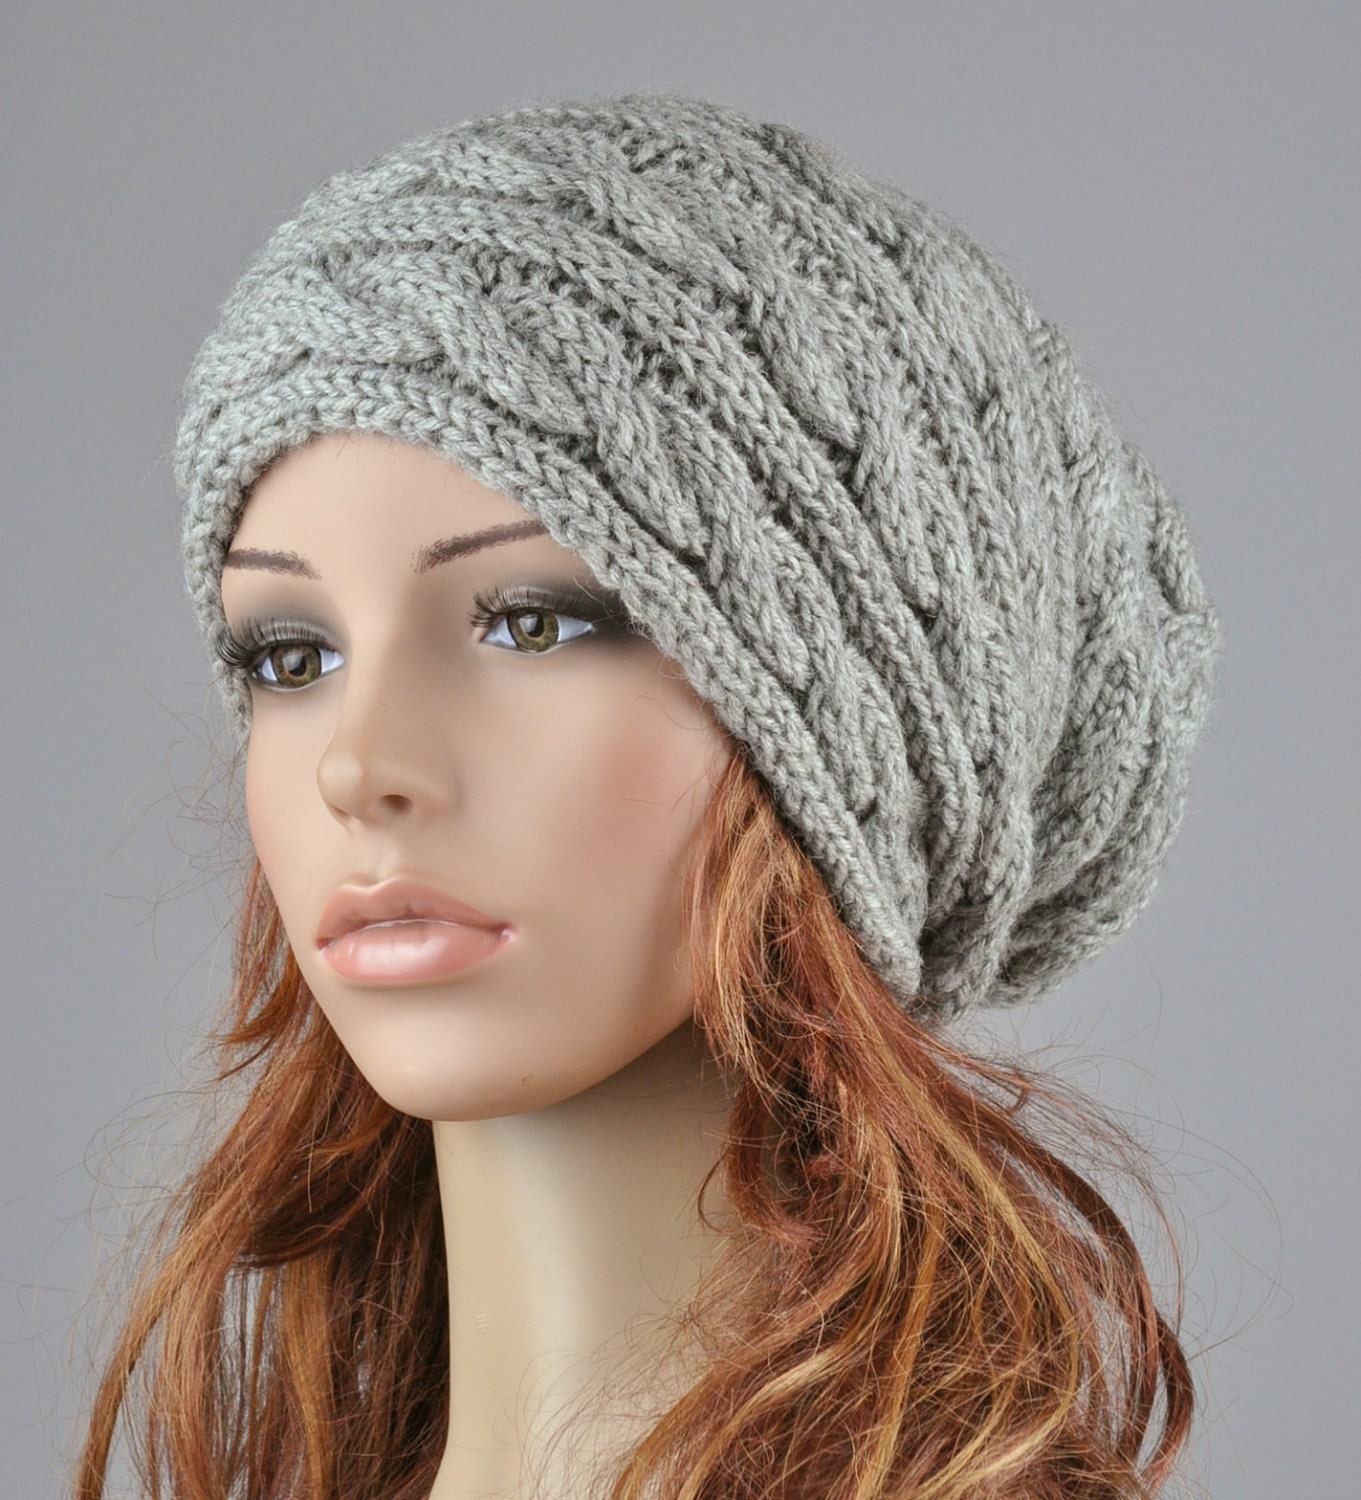 Womens Knit Hat Pattern : Hand knit hat Grey hat slouchy hat cable pattern hat